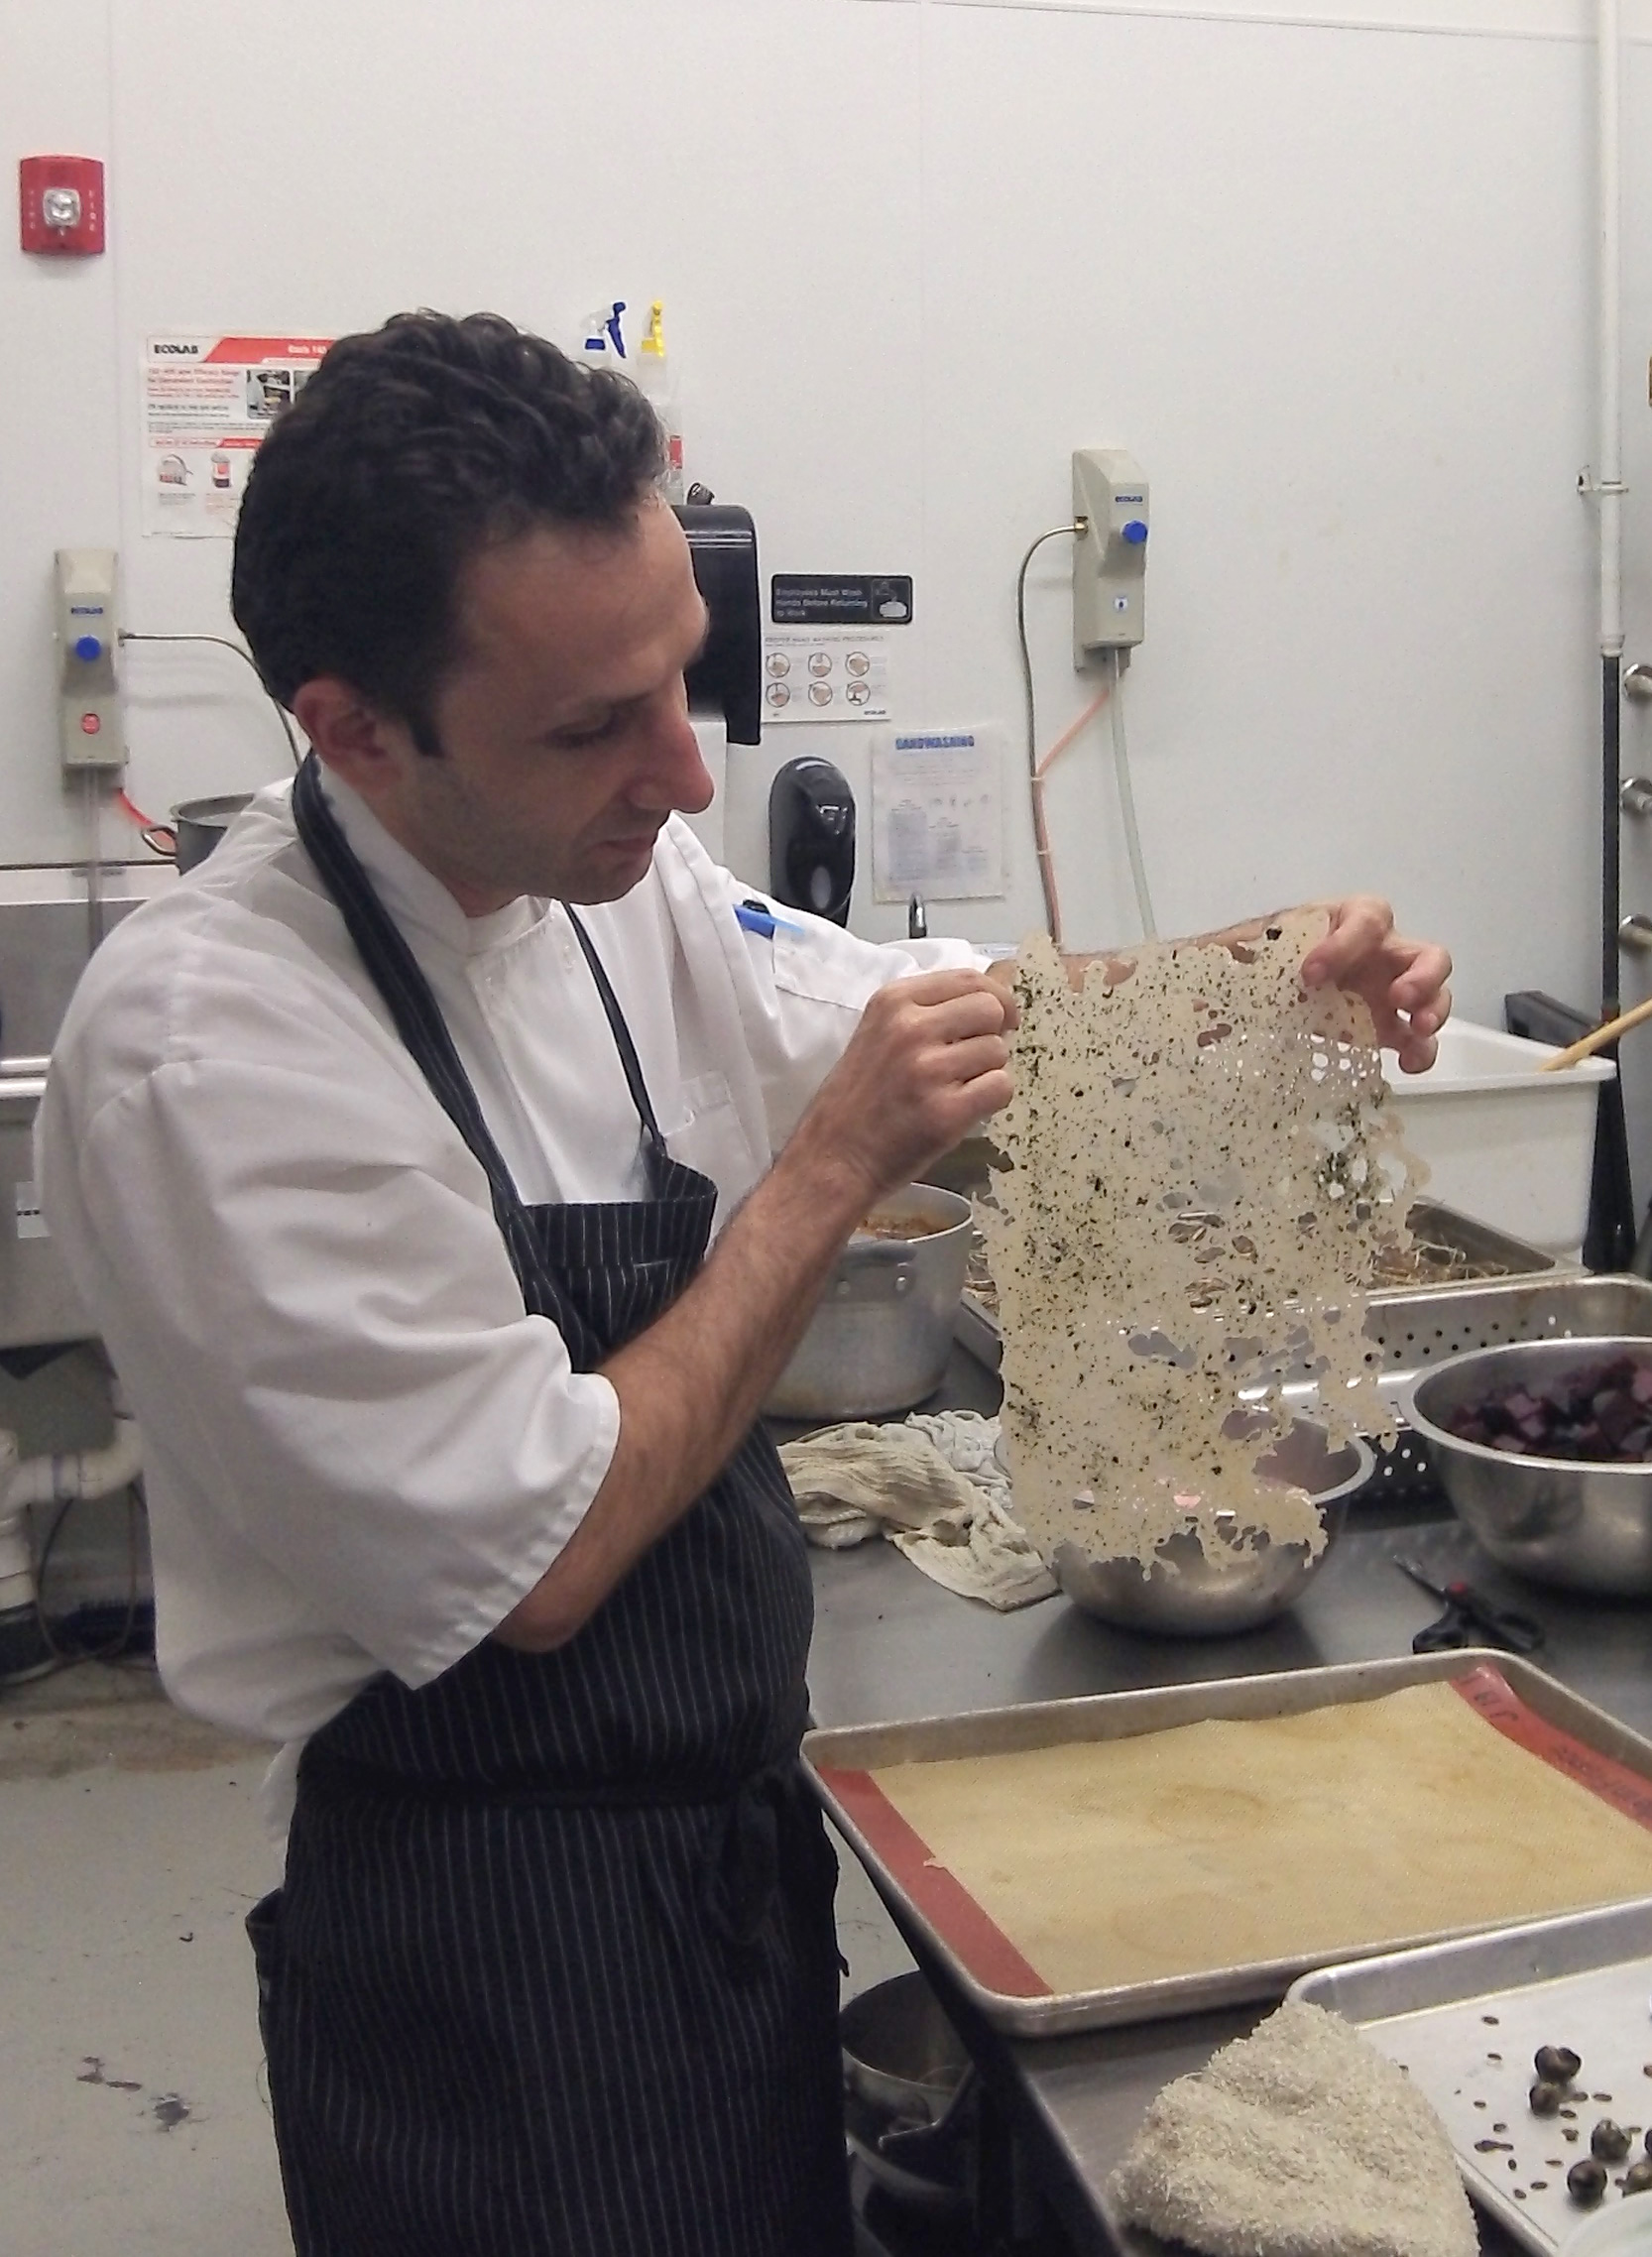 Chef Riz holds up a nori tuille for the cake